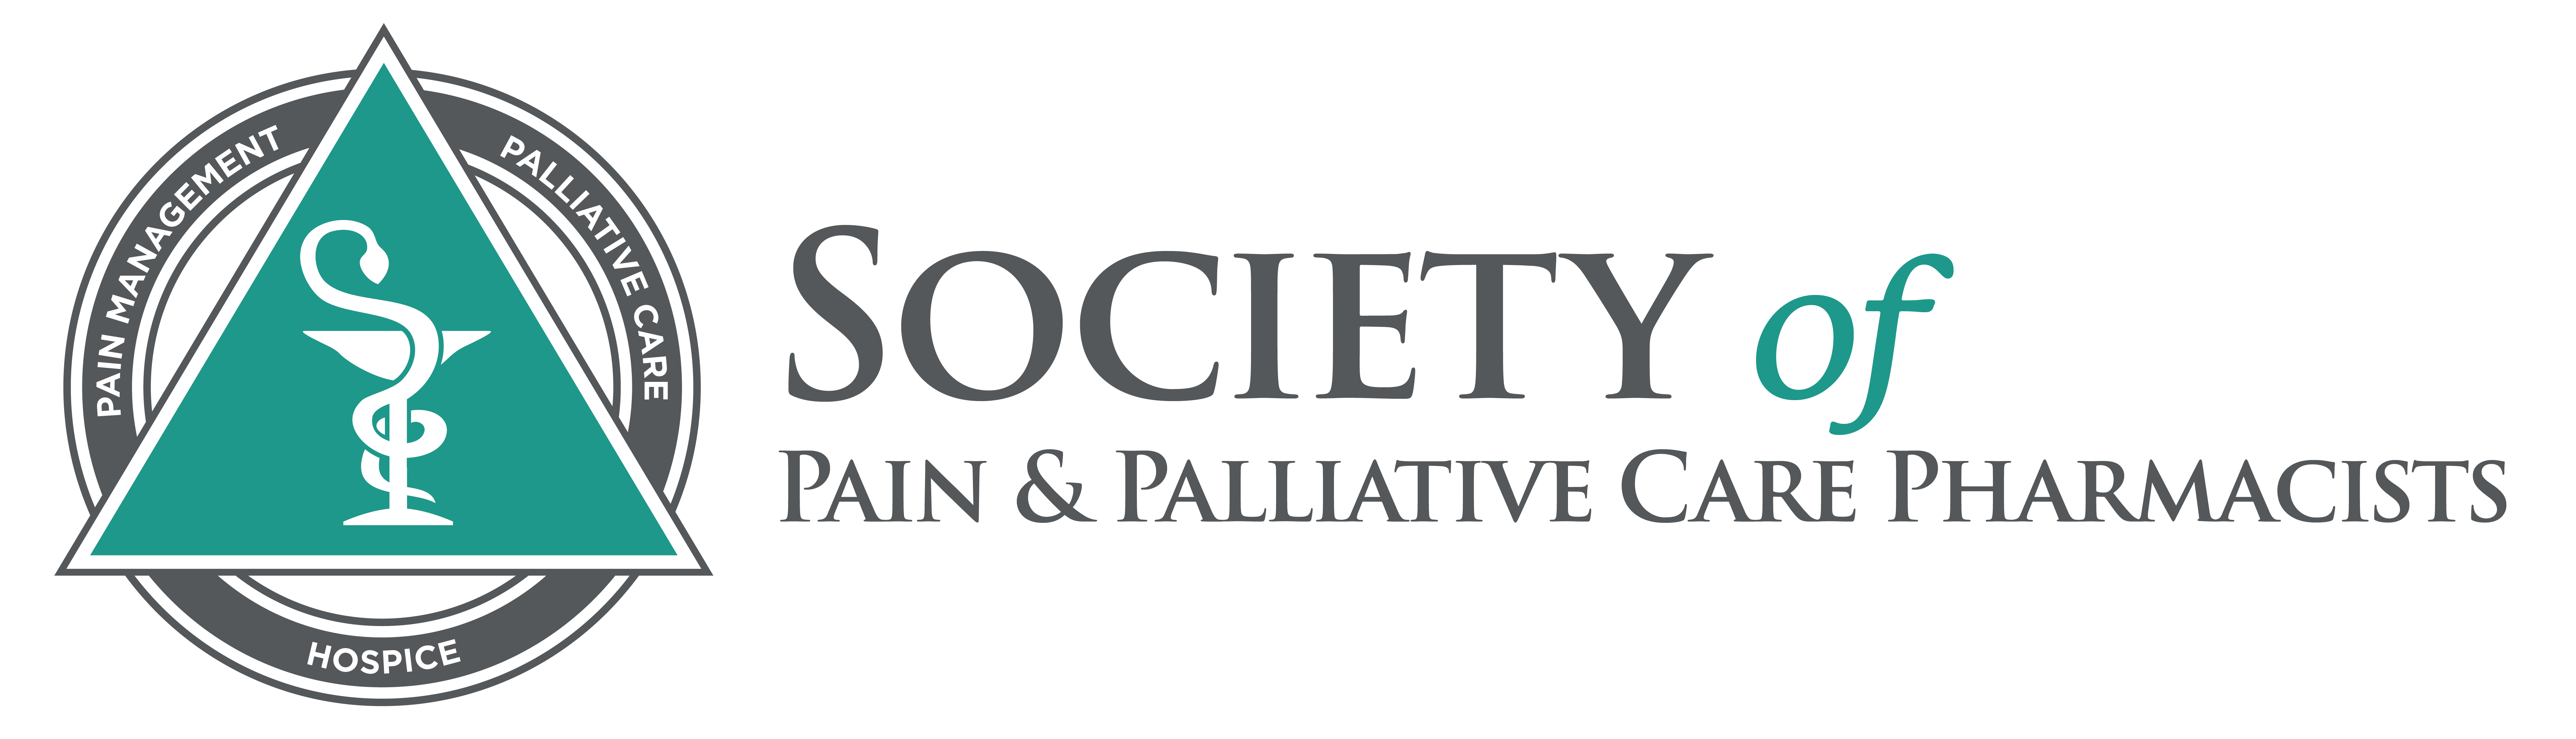 Society of Pain and Palliative Care Pharmacists